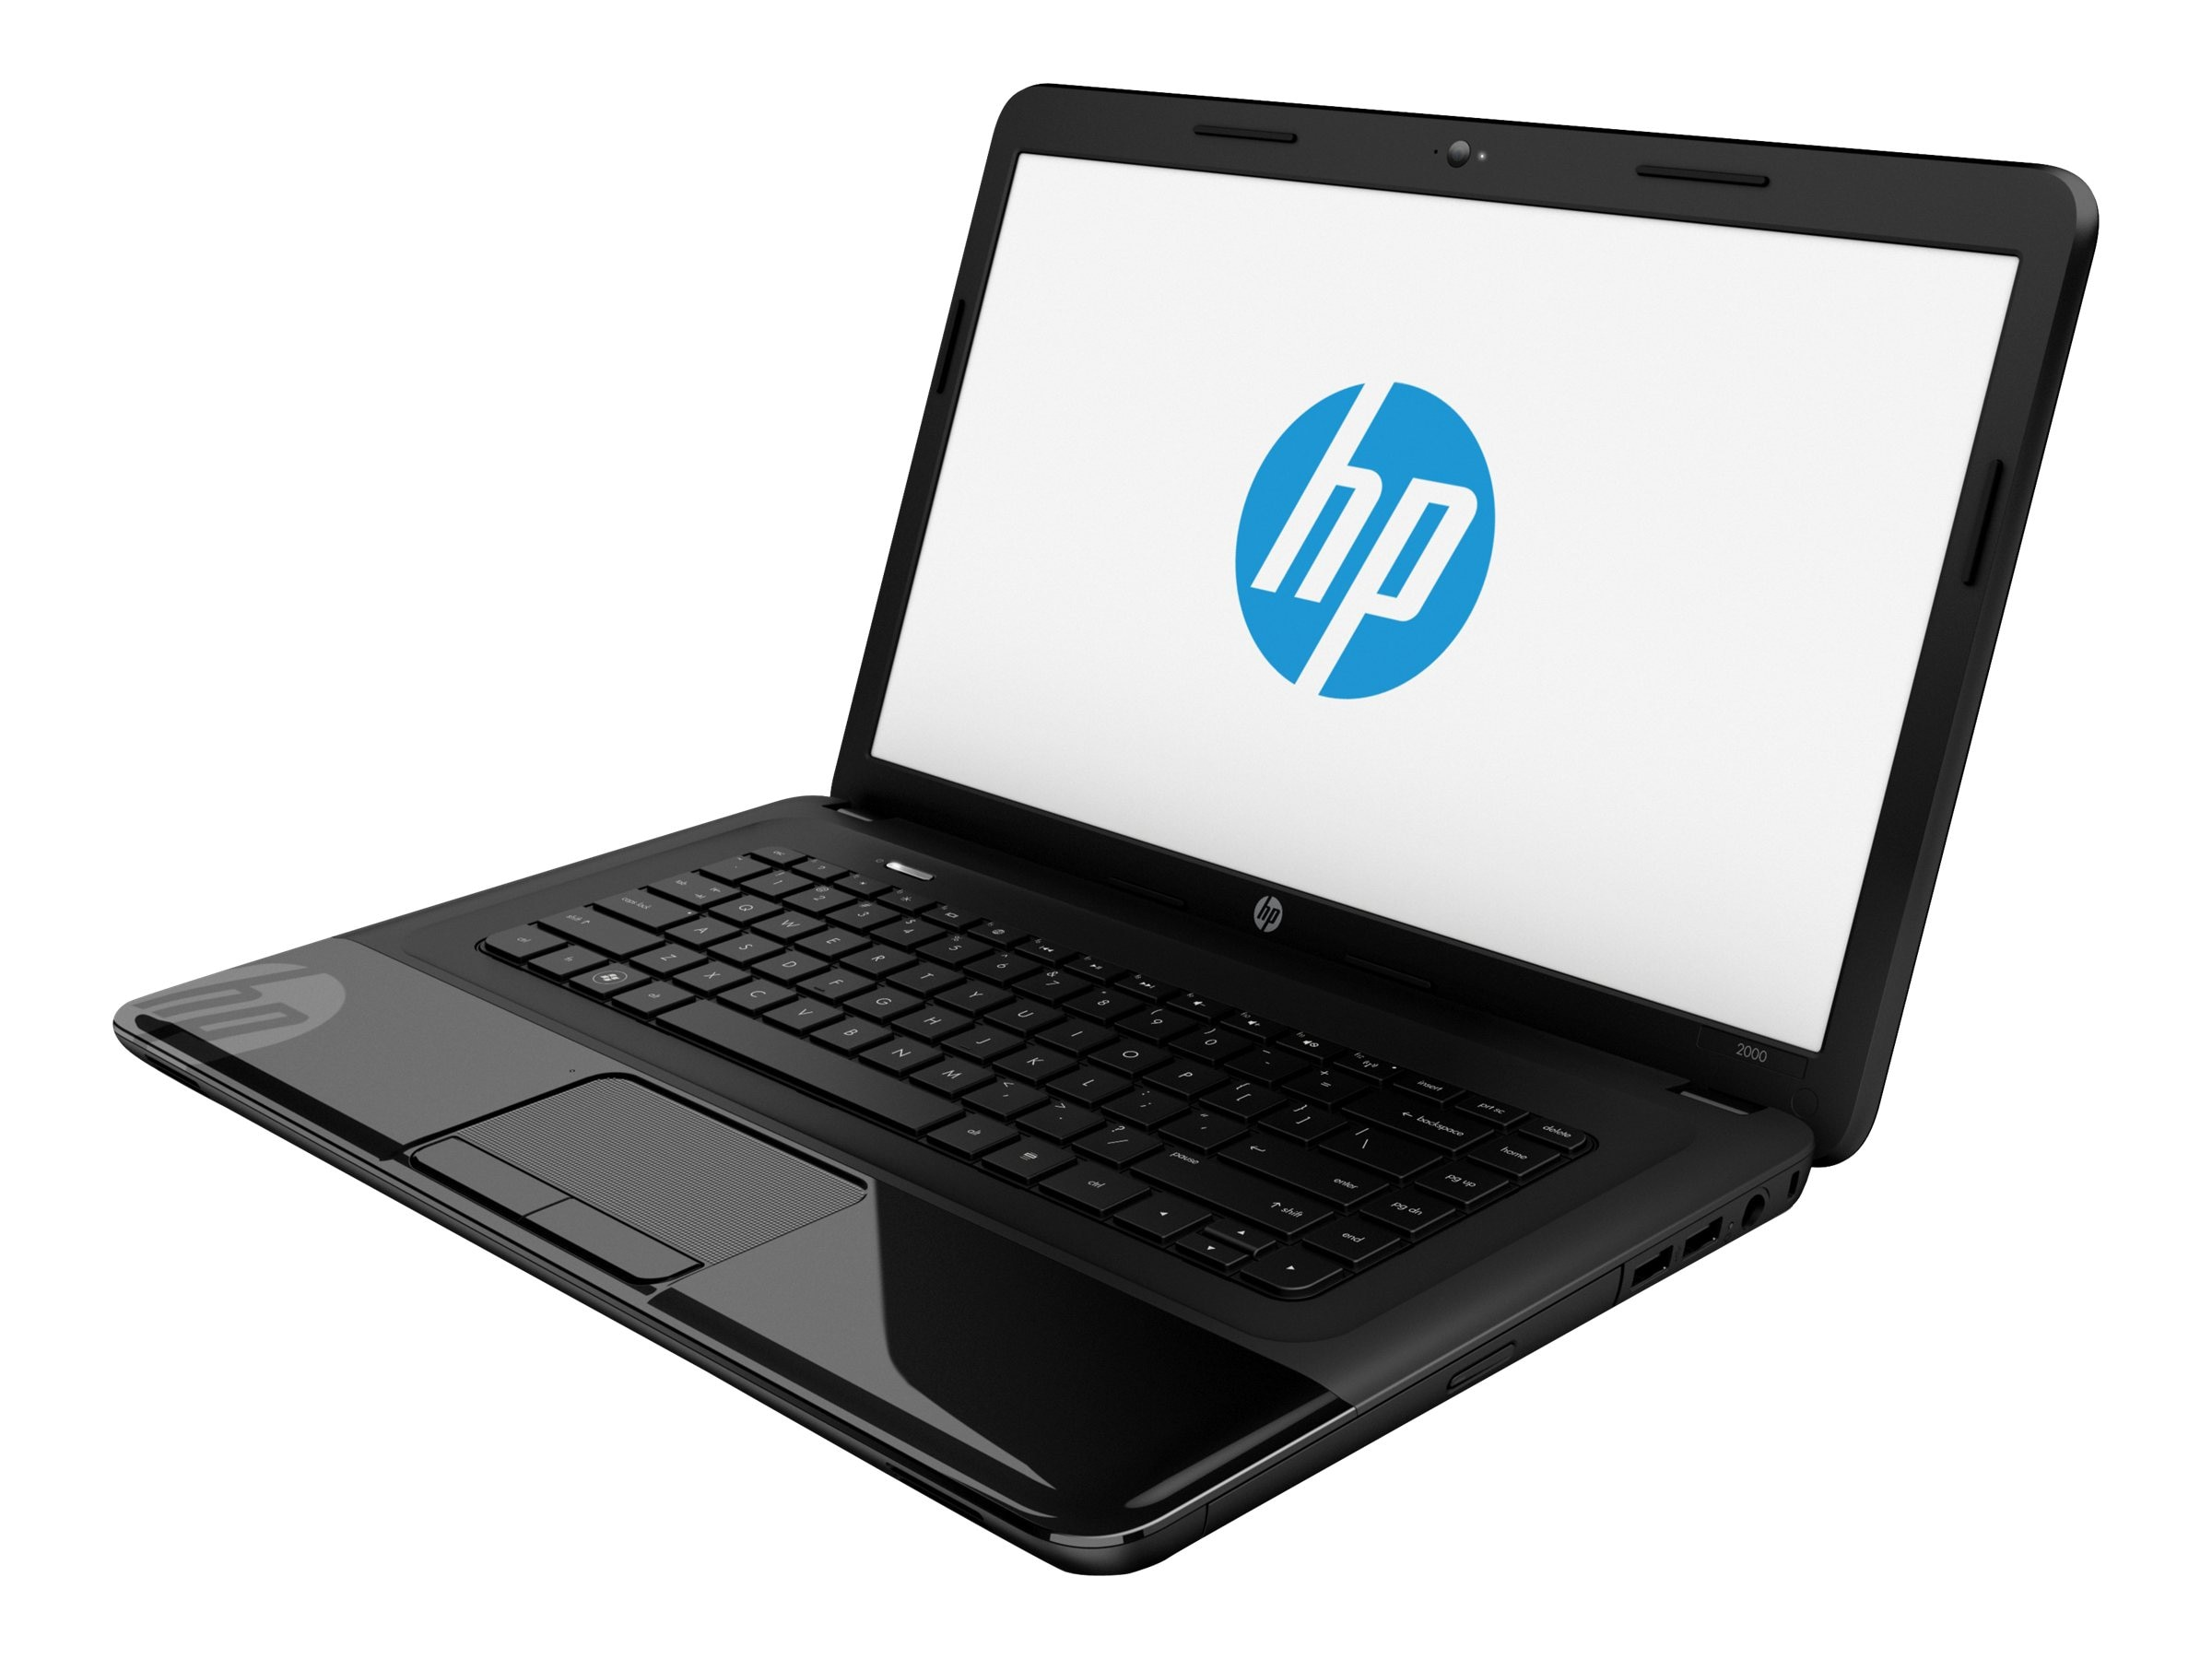 HP 2000-2c12NR AMD E2-1800 1.7GHz 4GB 500GB DVD SM bgn NIC BT WC 6C 15.6 HD W864, E0P69UA#ABA, 15695888, Notebooks